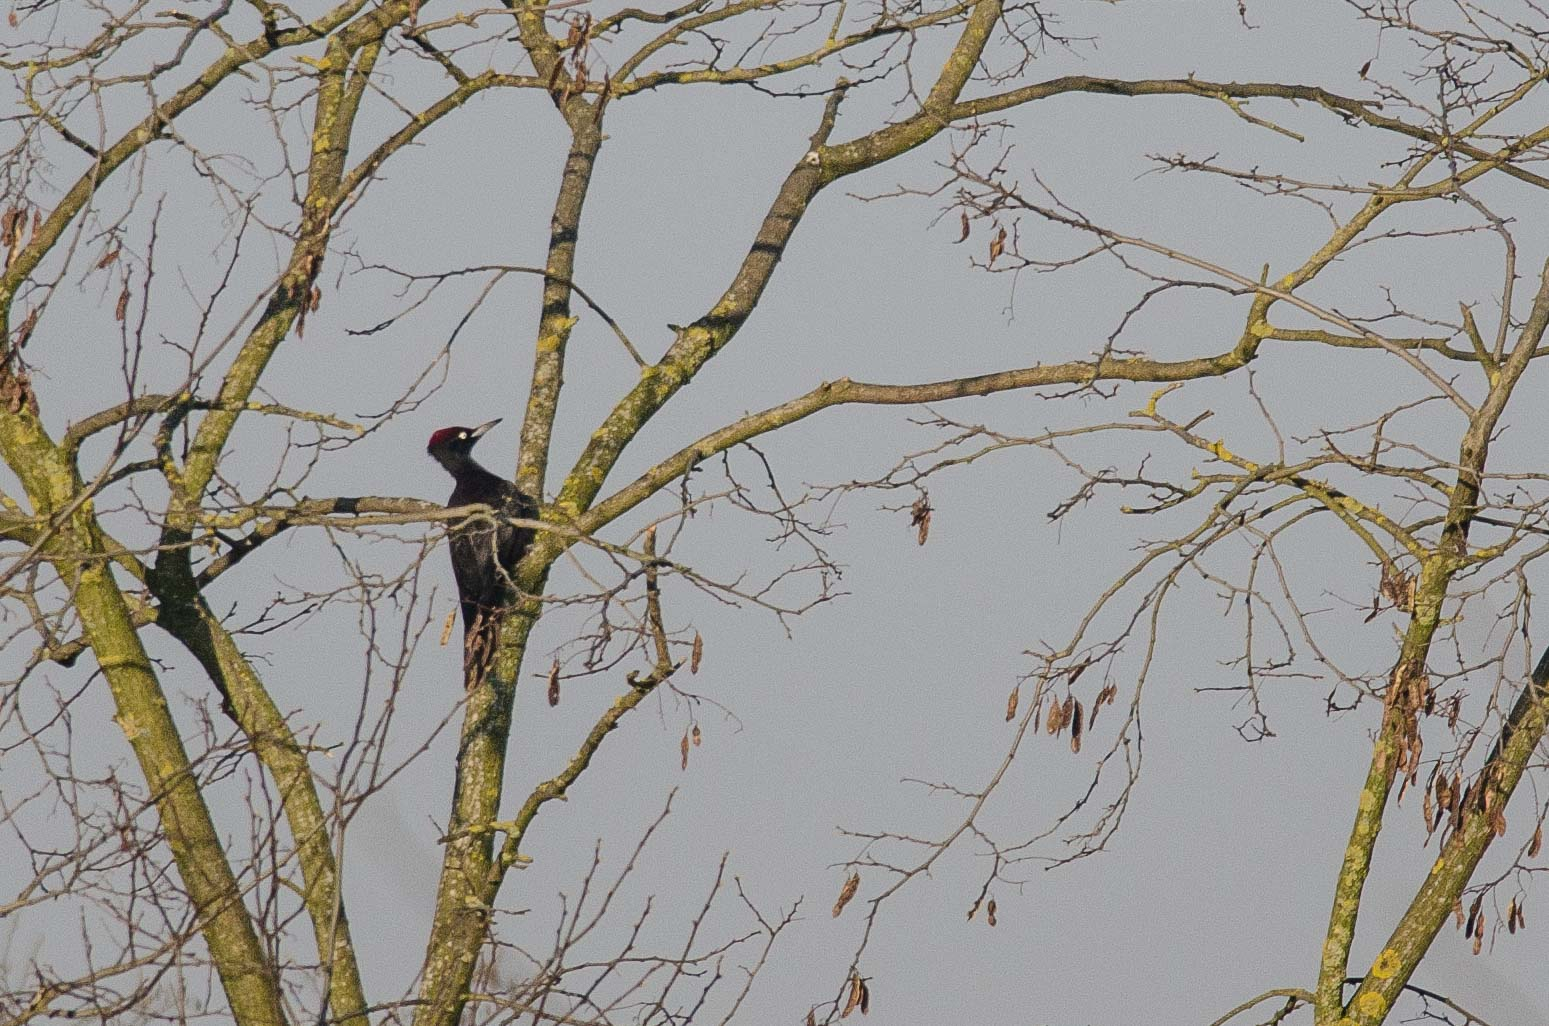 Black Woodpecker (Pic noir)